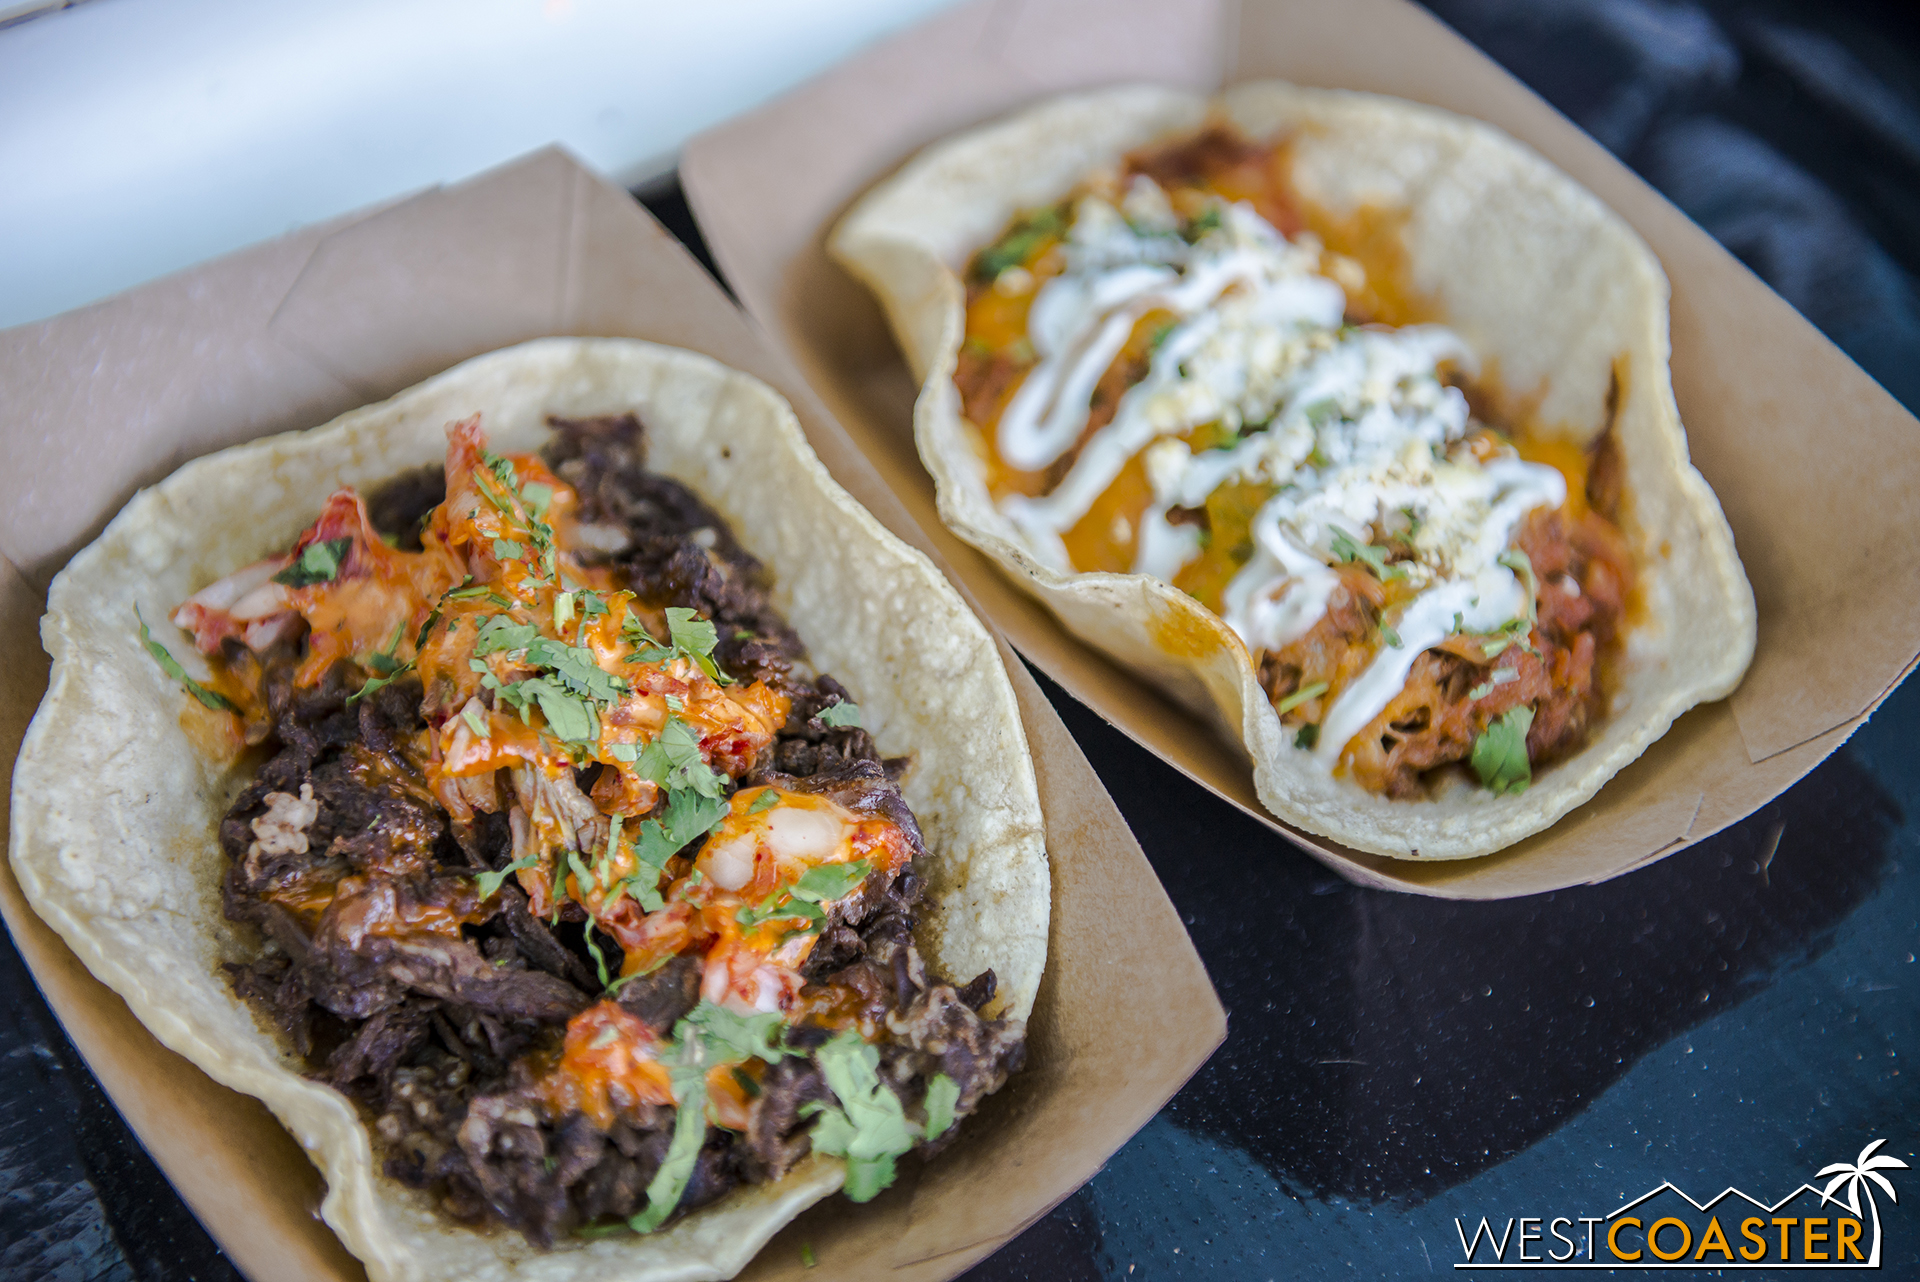 There were plenty of fantastic taco trucks on hand selling a huge assortment of delicious food.